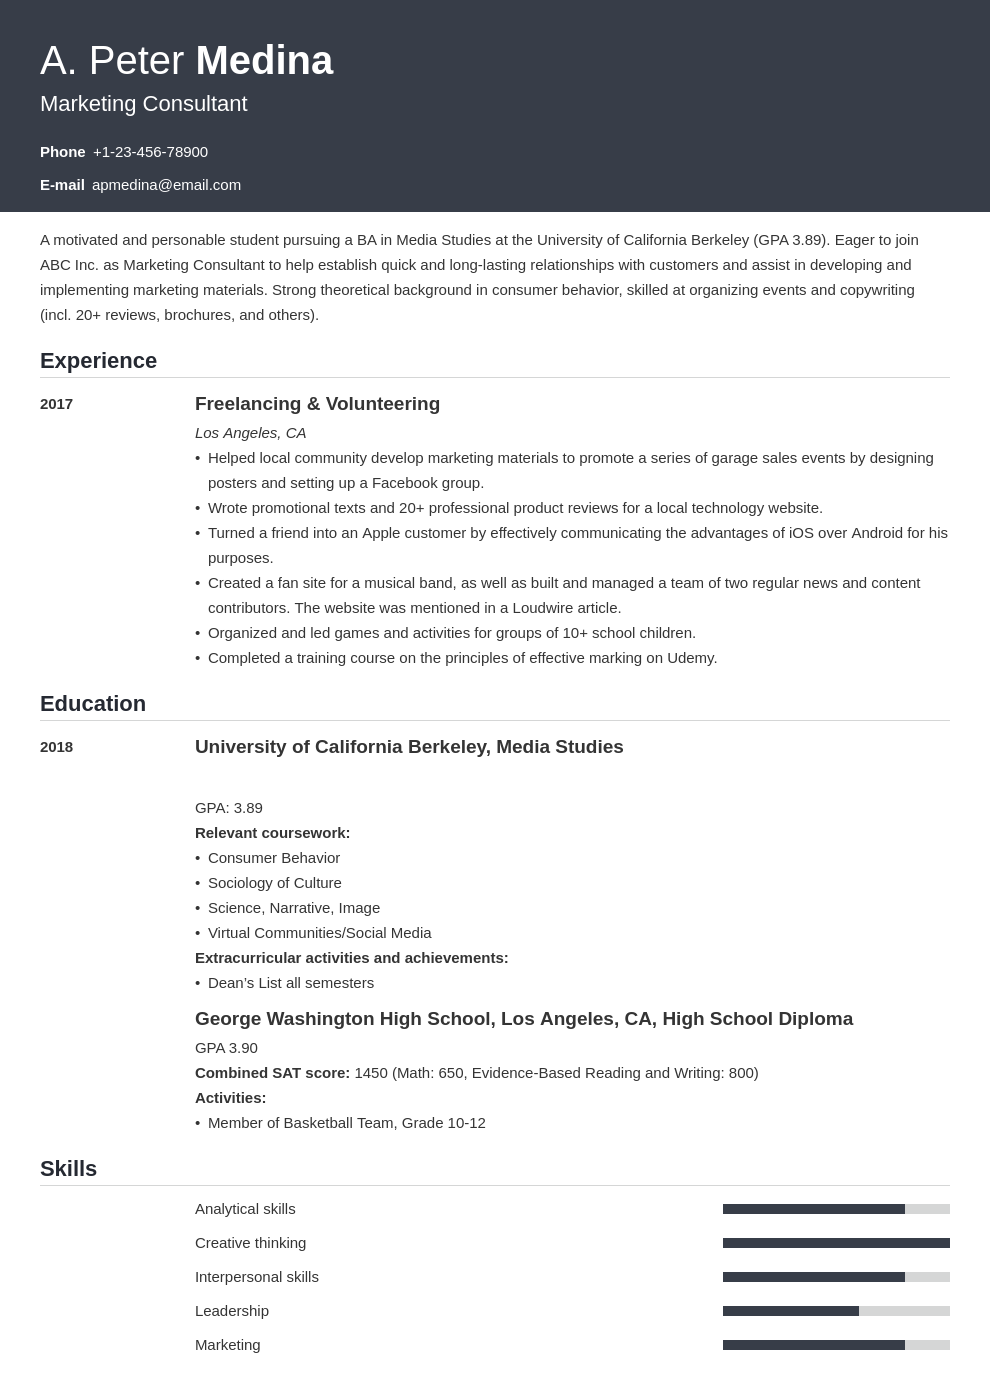 Resume with no past experience resume credit card experience